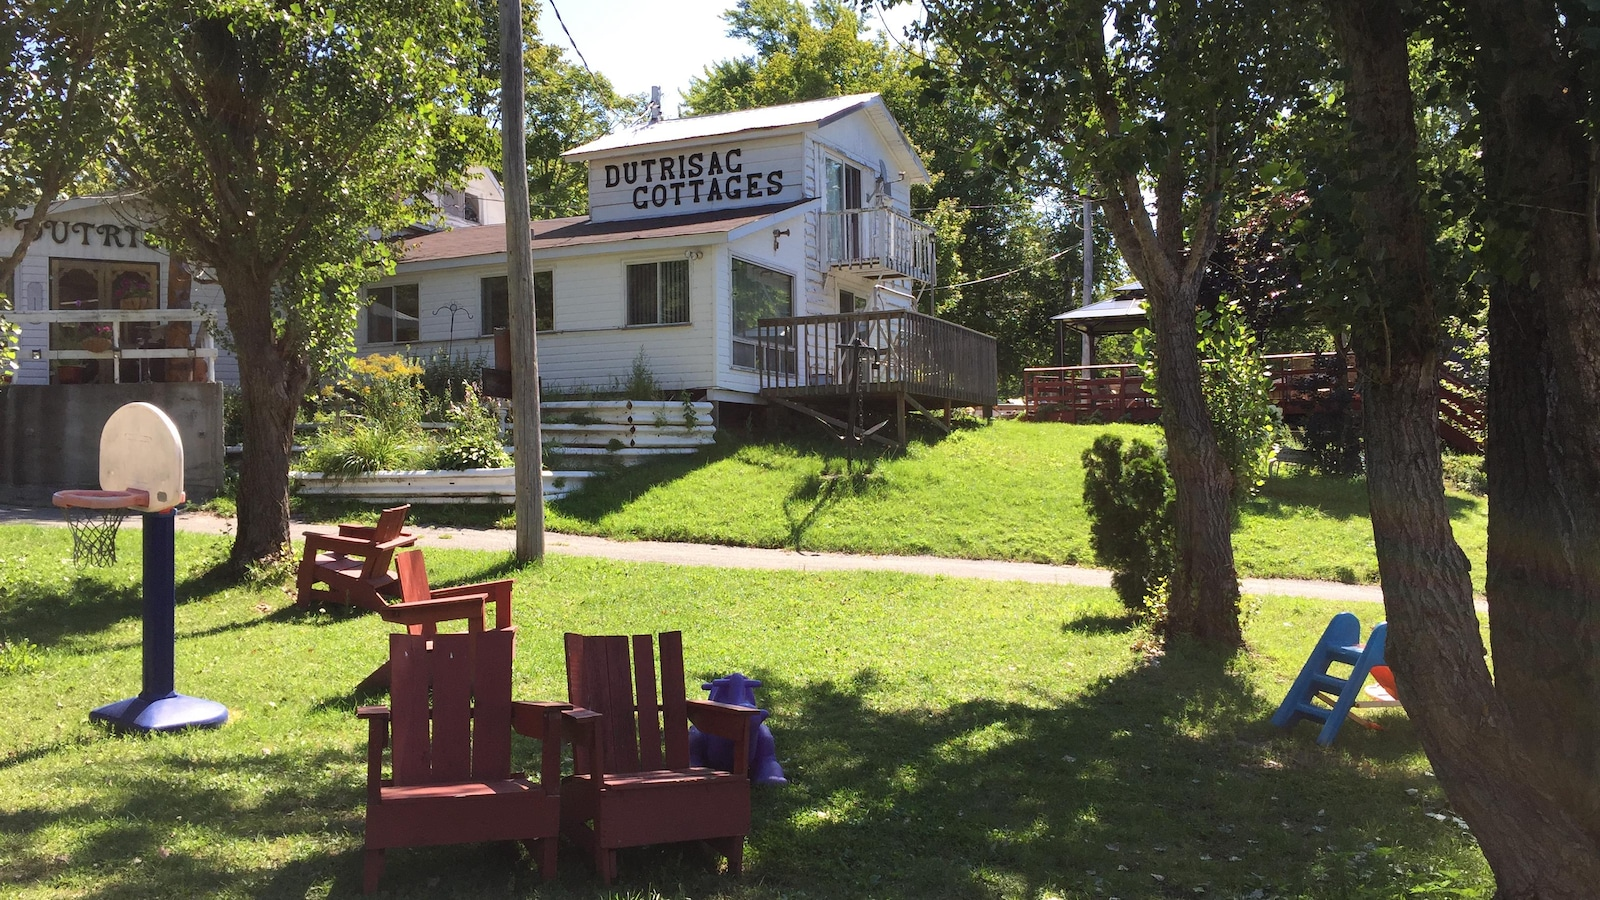 Le camping Dutrisac Cottages and Camping à Sturgeon Falls